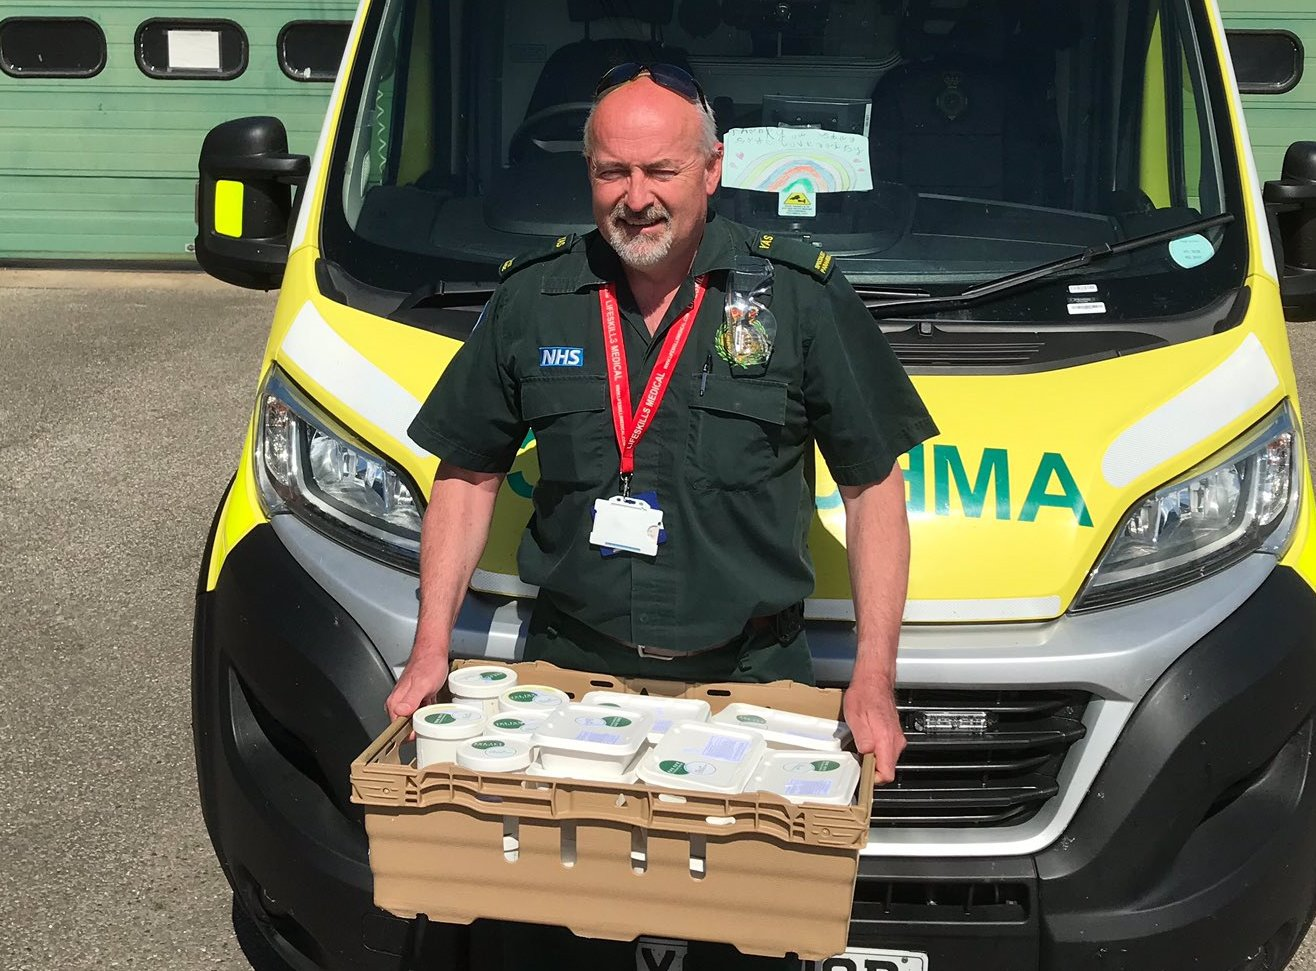 Thousands of meals donated to NHS and community projects